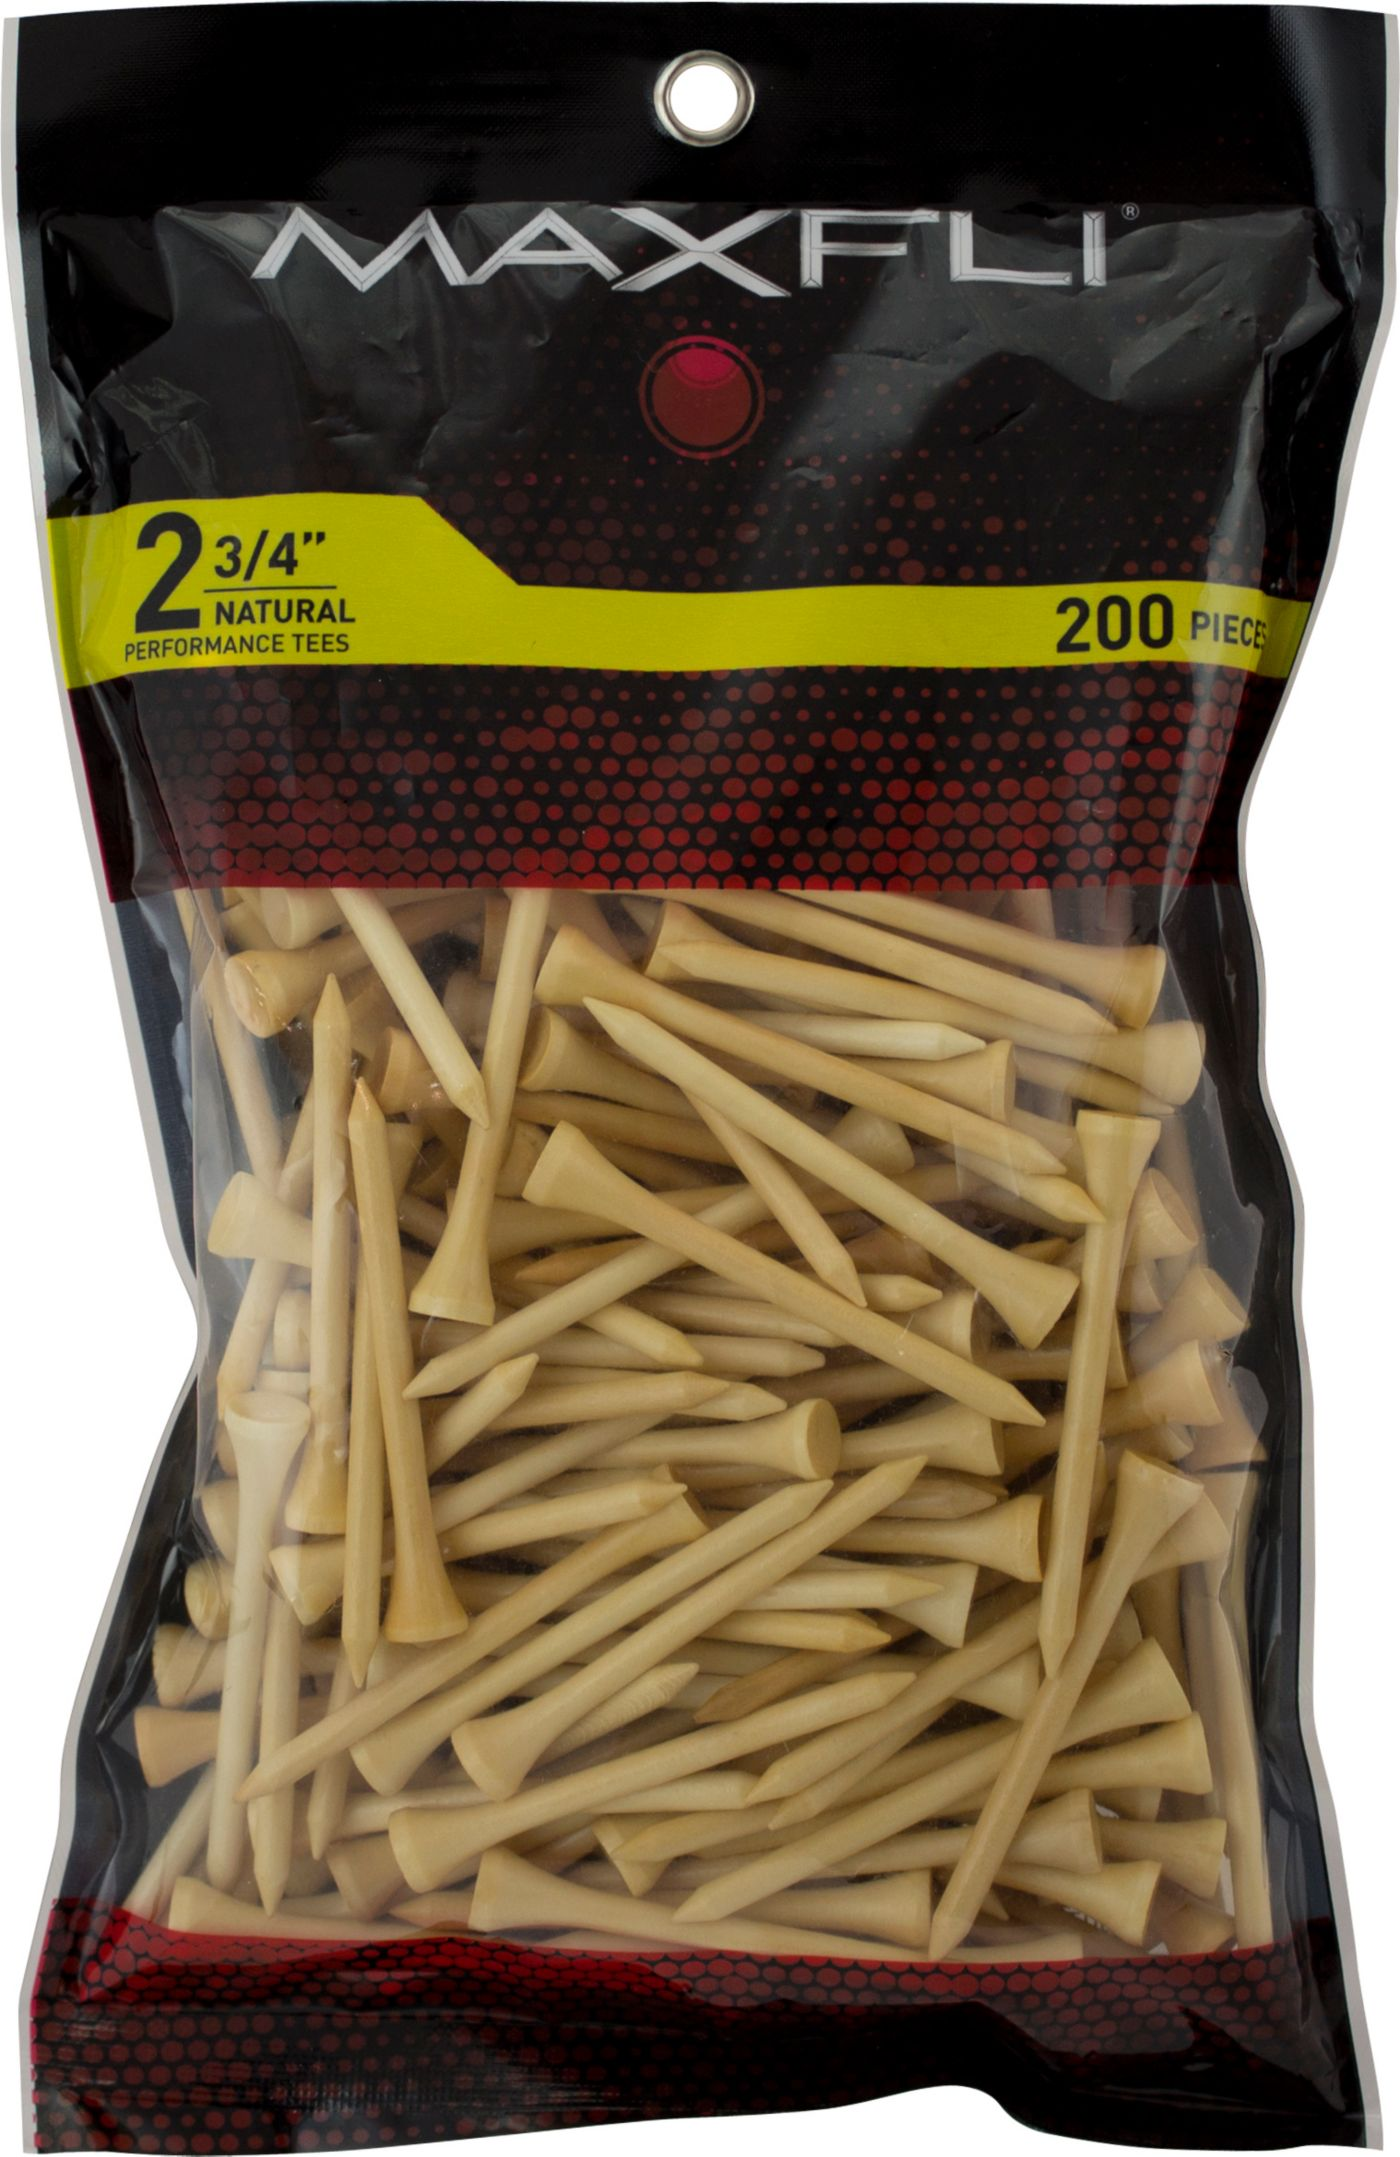 Maxfli 2 3/4'' Natural Golf Tees - 200 Pack